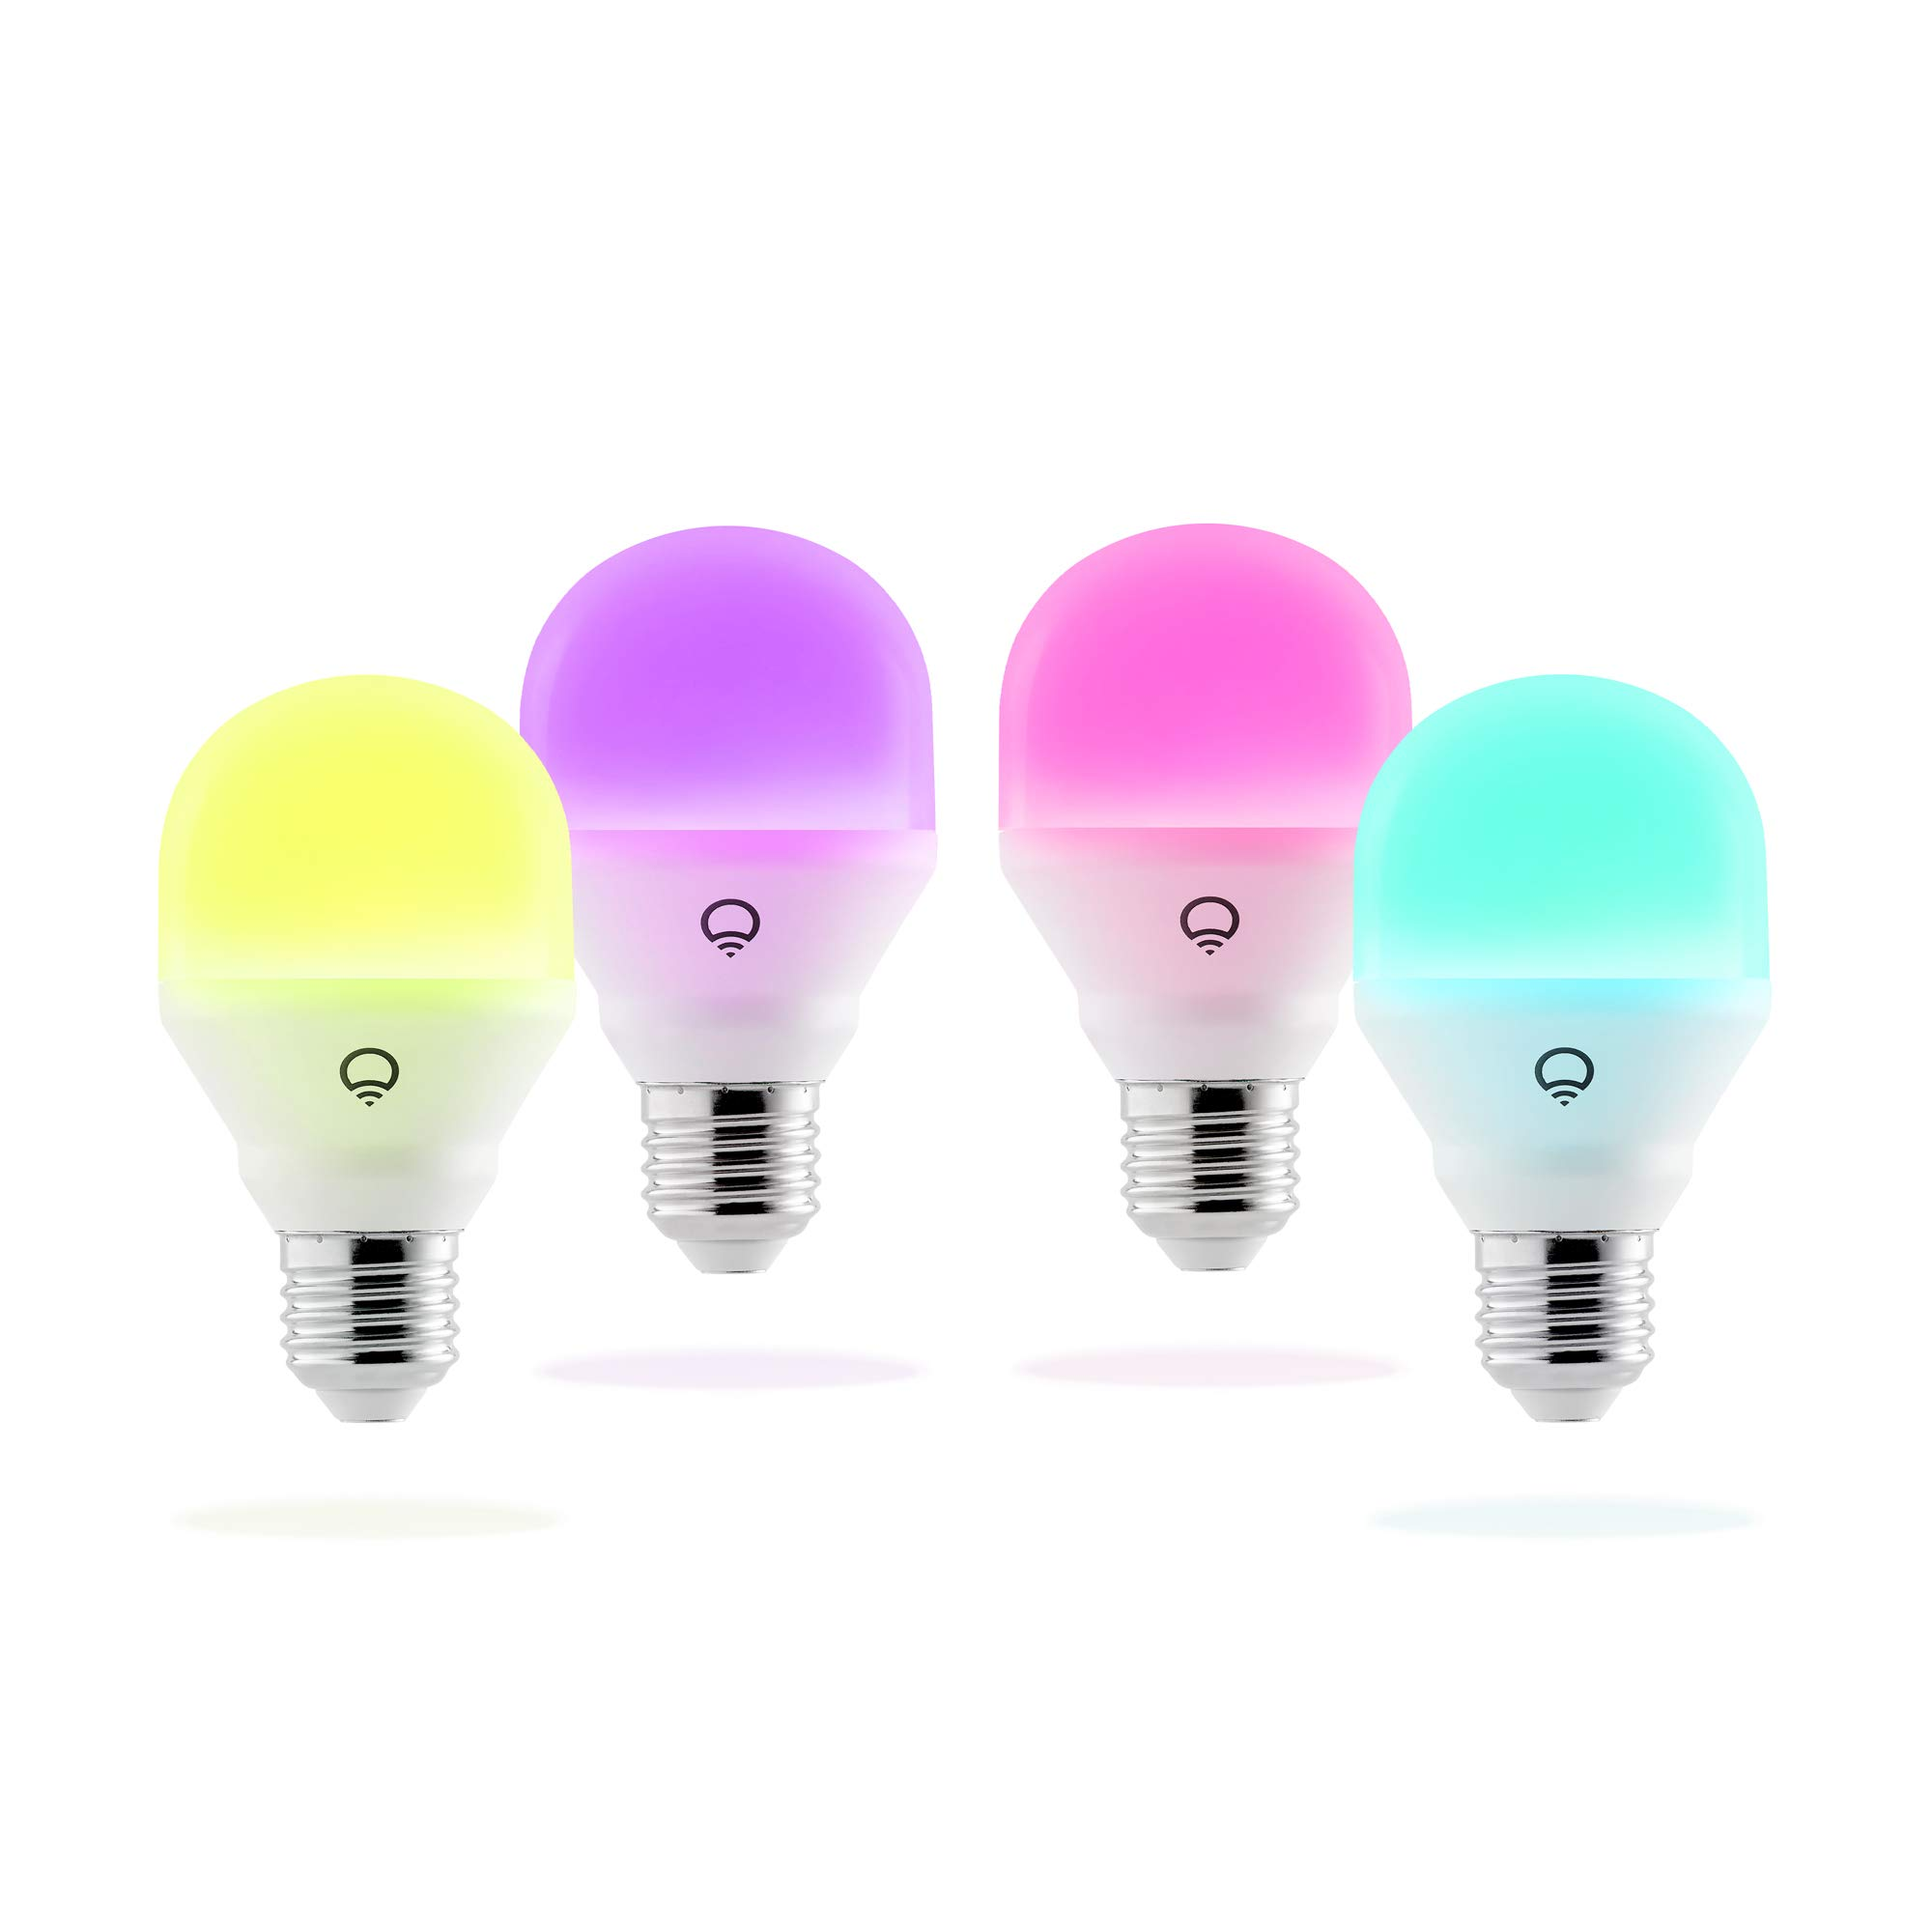 LIFX A19 Mini Color Wi-Fi Smart LED Light Bulb, Color Changing, Dimmable, No Hub Required, App & Voice Control, Works with Amazon Alexa, Apple HomeKit, Google Assistant & Microsoft Cortana - 4 Pack